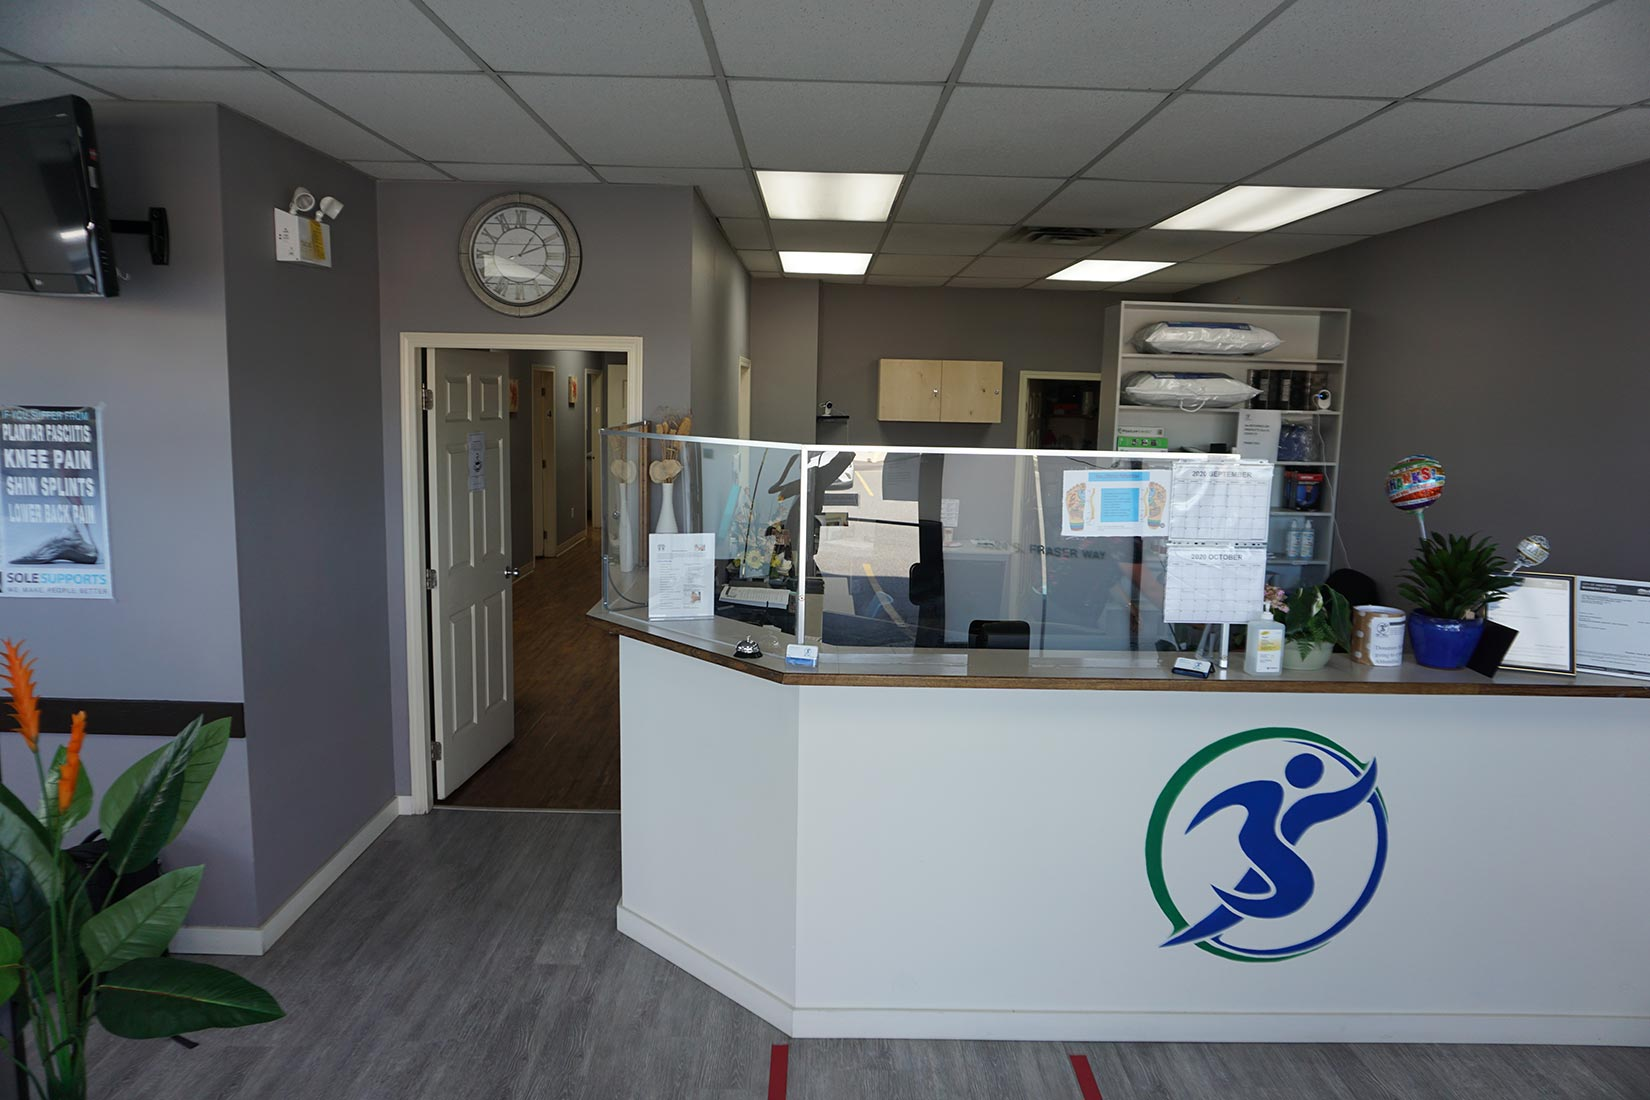 Physio clinic interior view with front desk